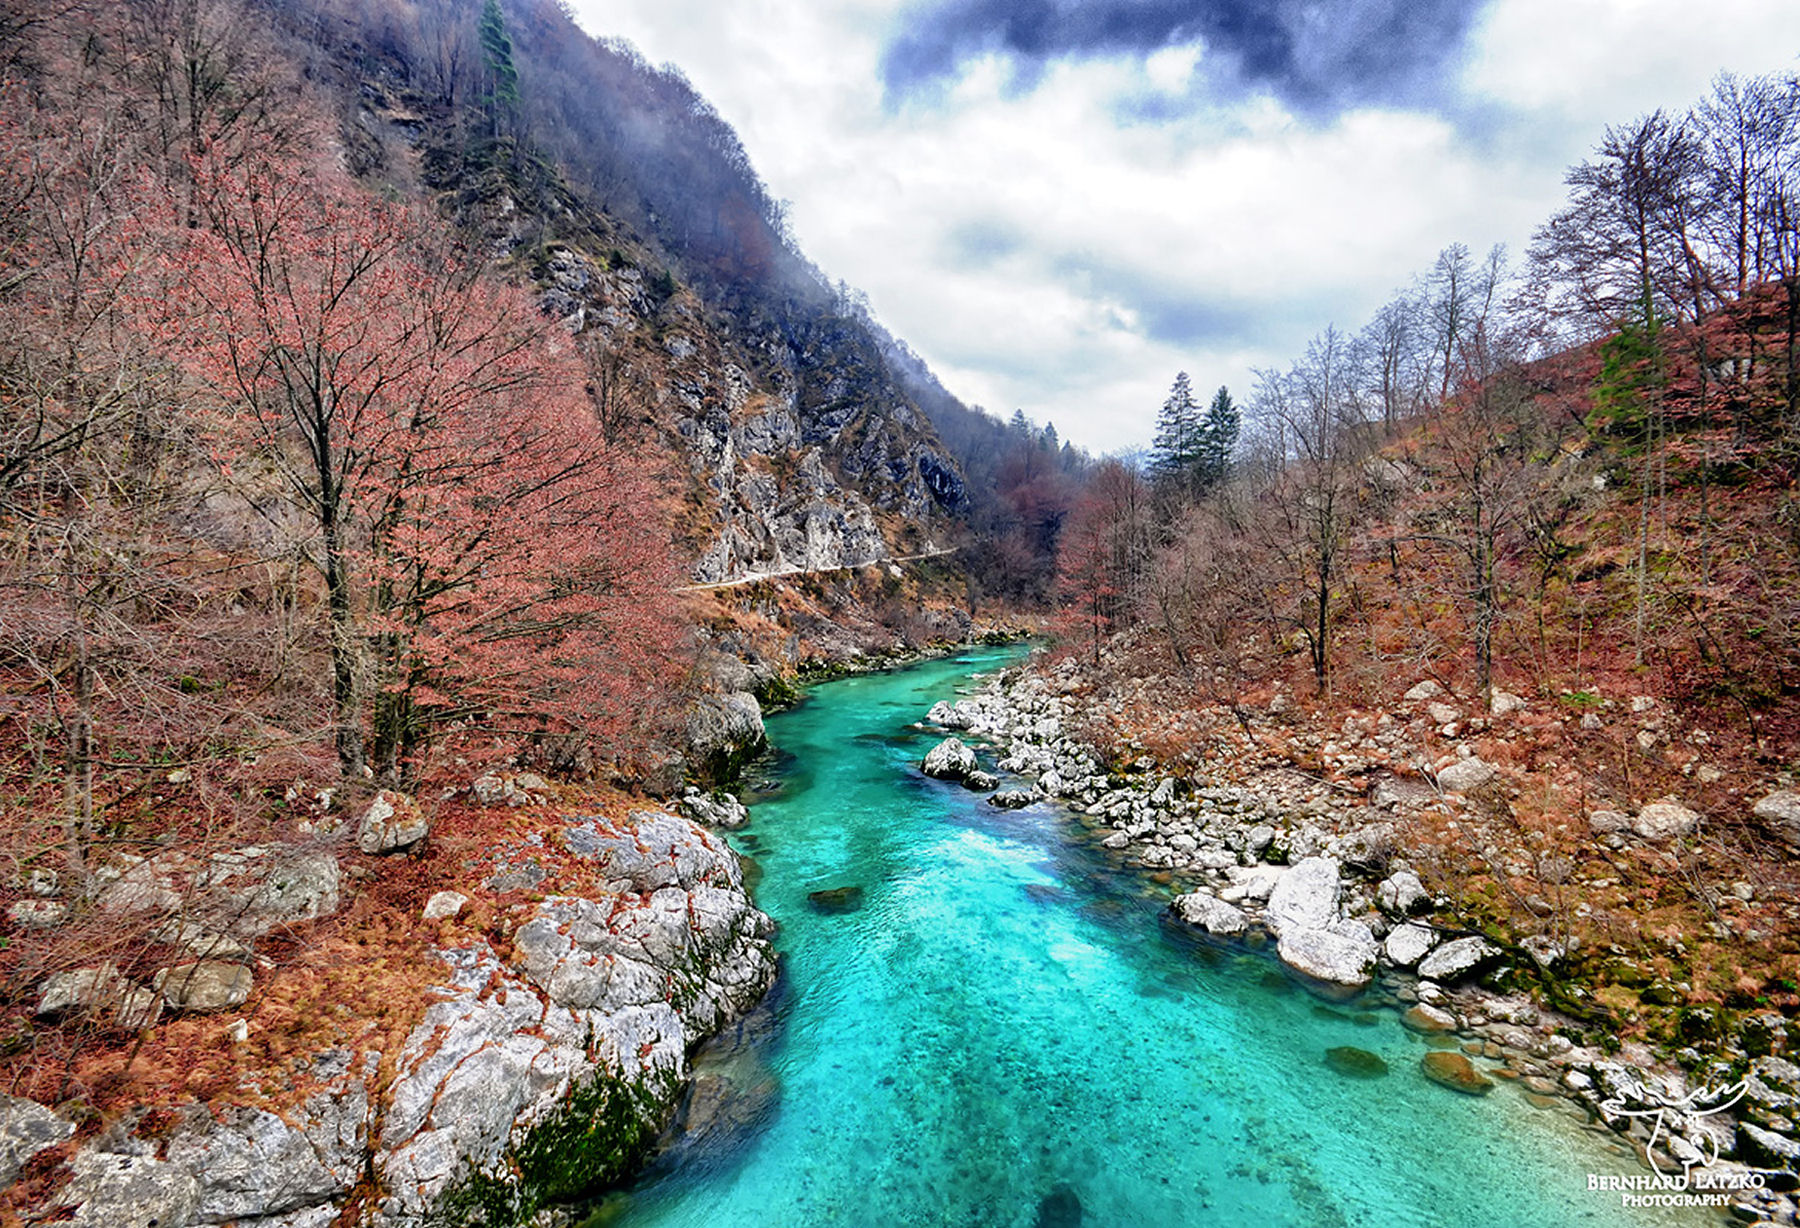 Autumn at the Soca River in the Slovenian Alps